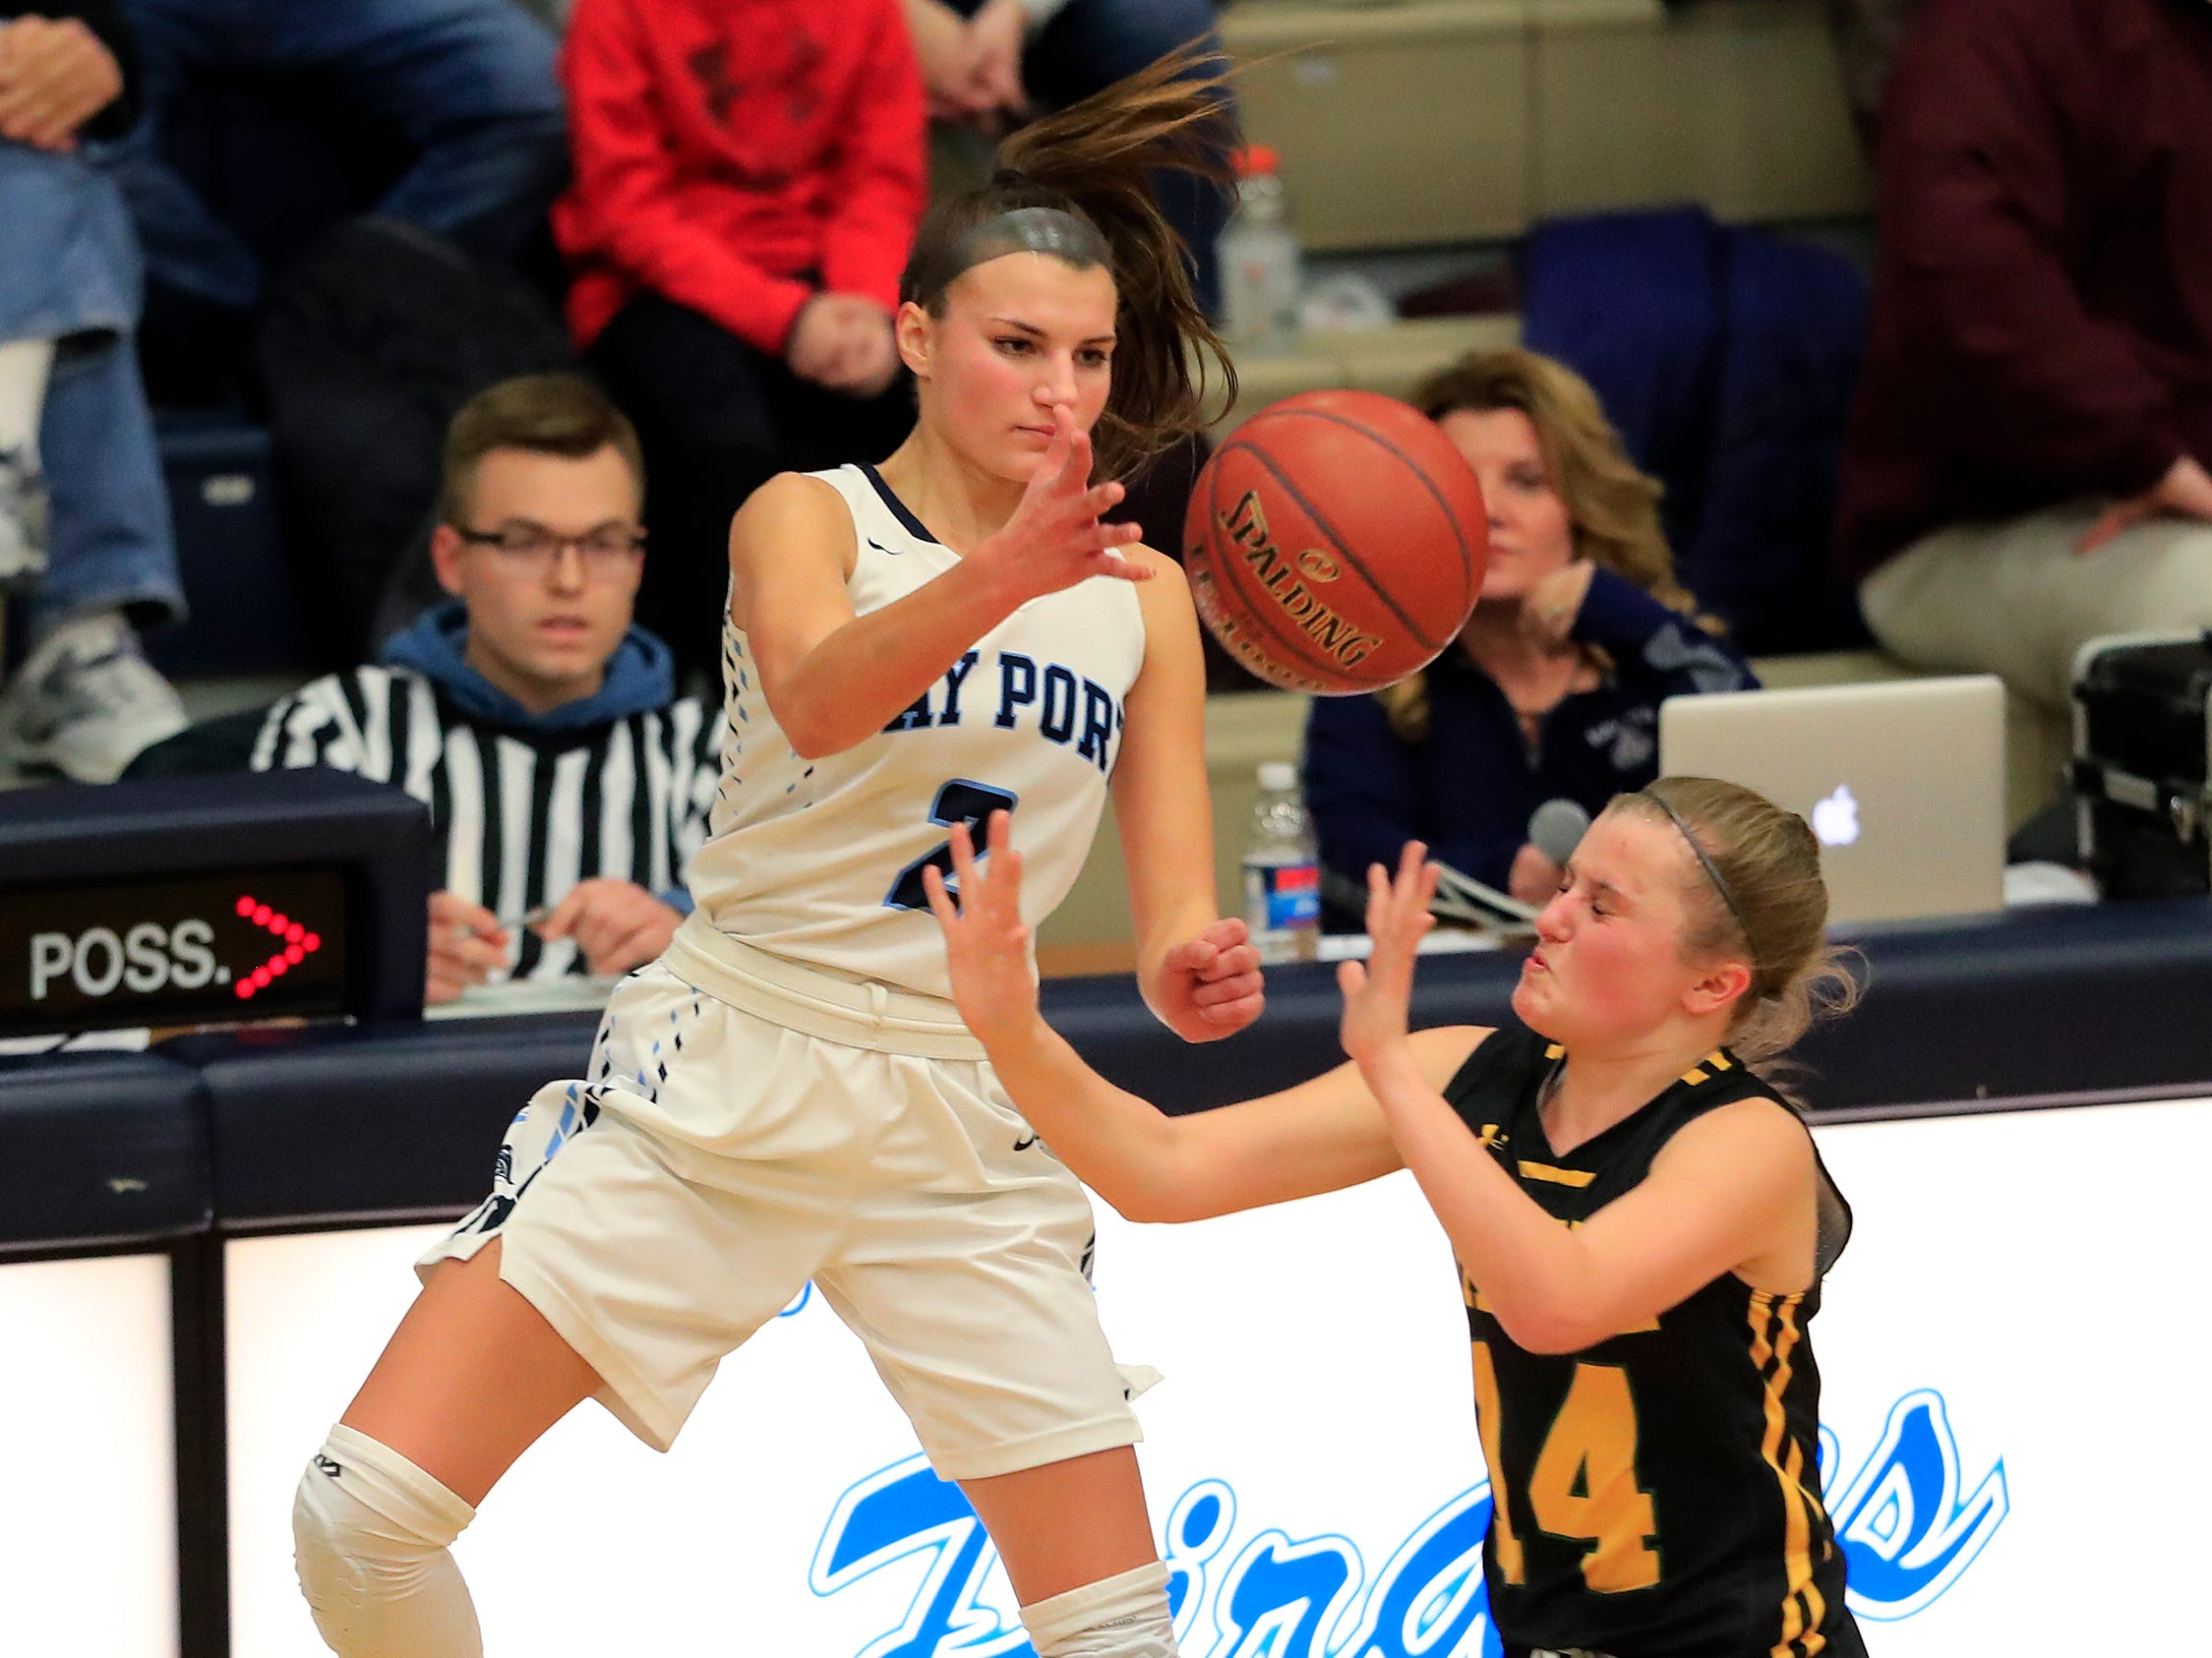 Bay Port's Grace Krause (2) is pressured by Green Bay Preble's Taylor Sleger (14) in a FRCC girls basketball game at Bay Port high school on Friday, February 8, 2019 in Suamico, Wis.